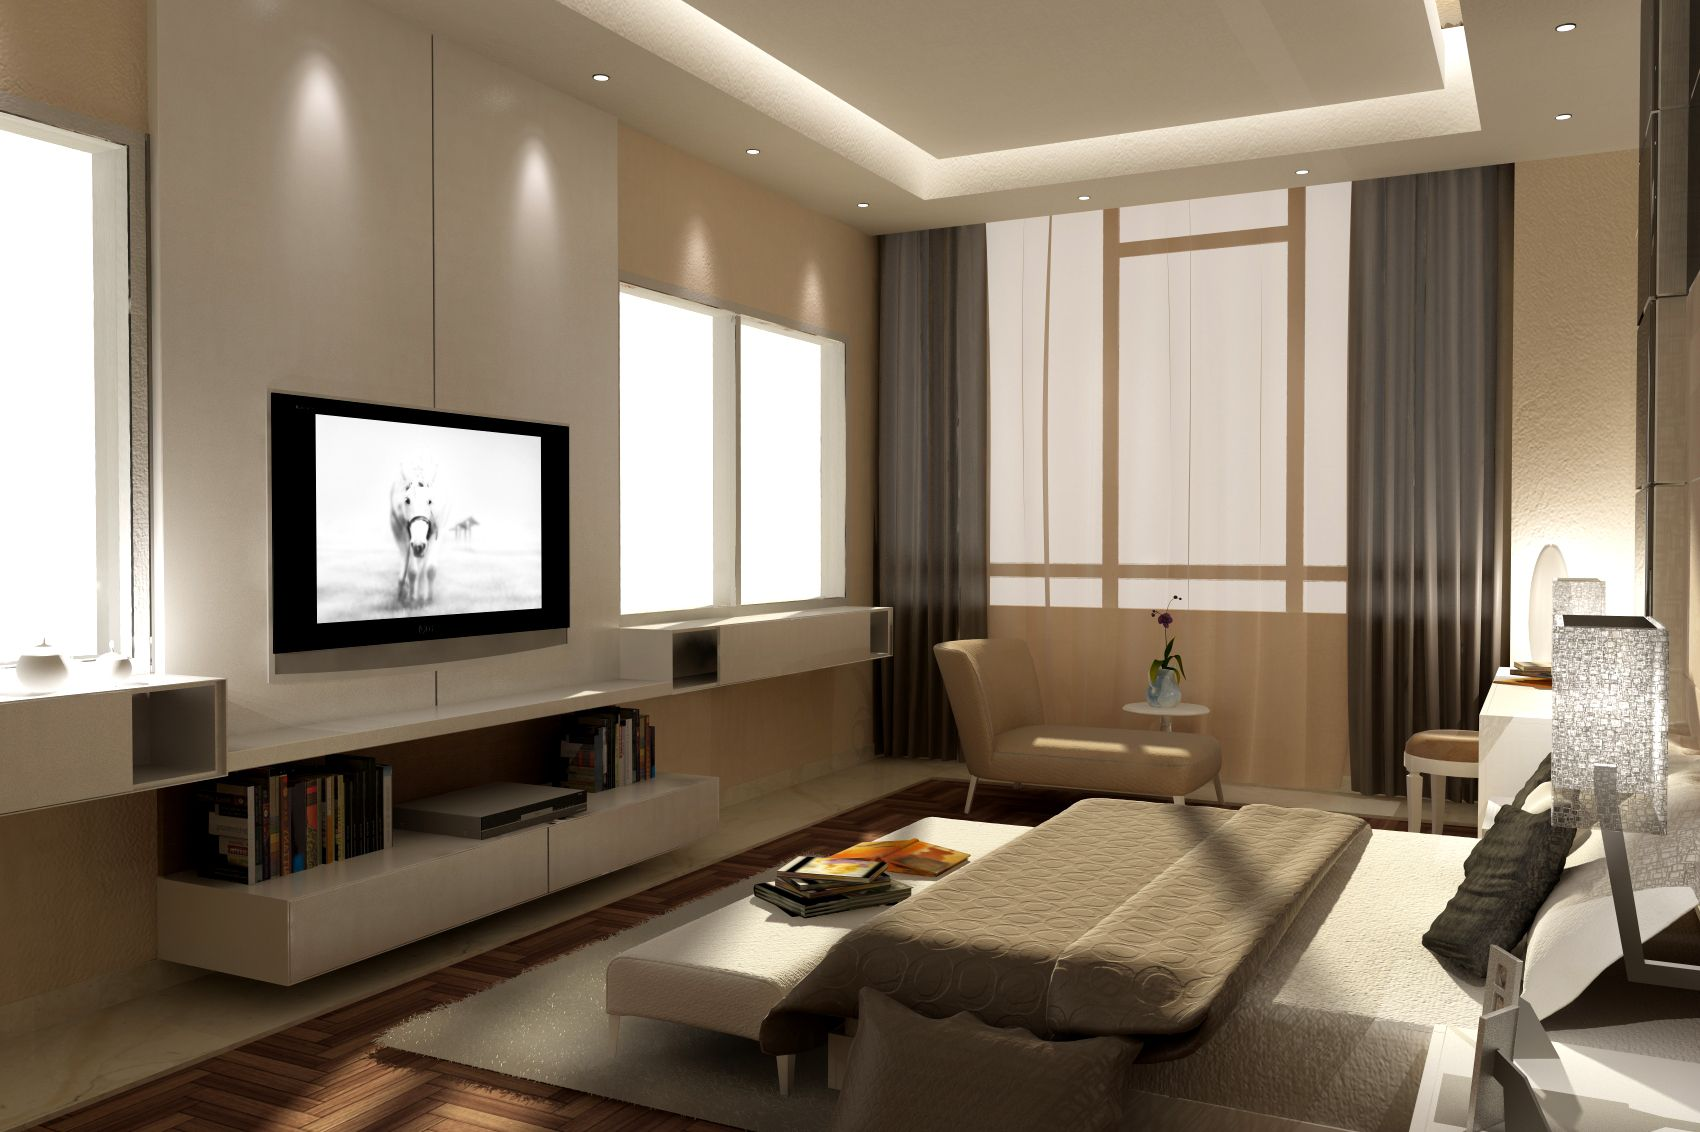 Bedroom modern bedroom interior design 3d max 3d Contemporary interior design